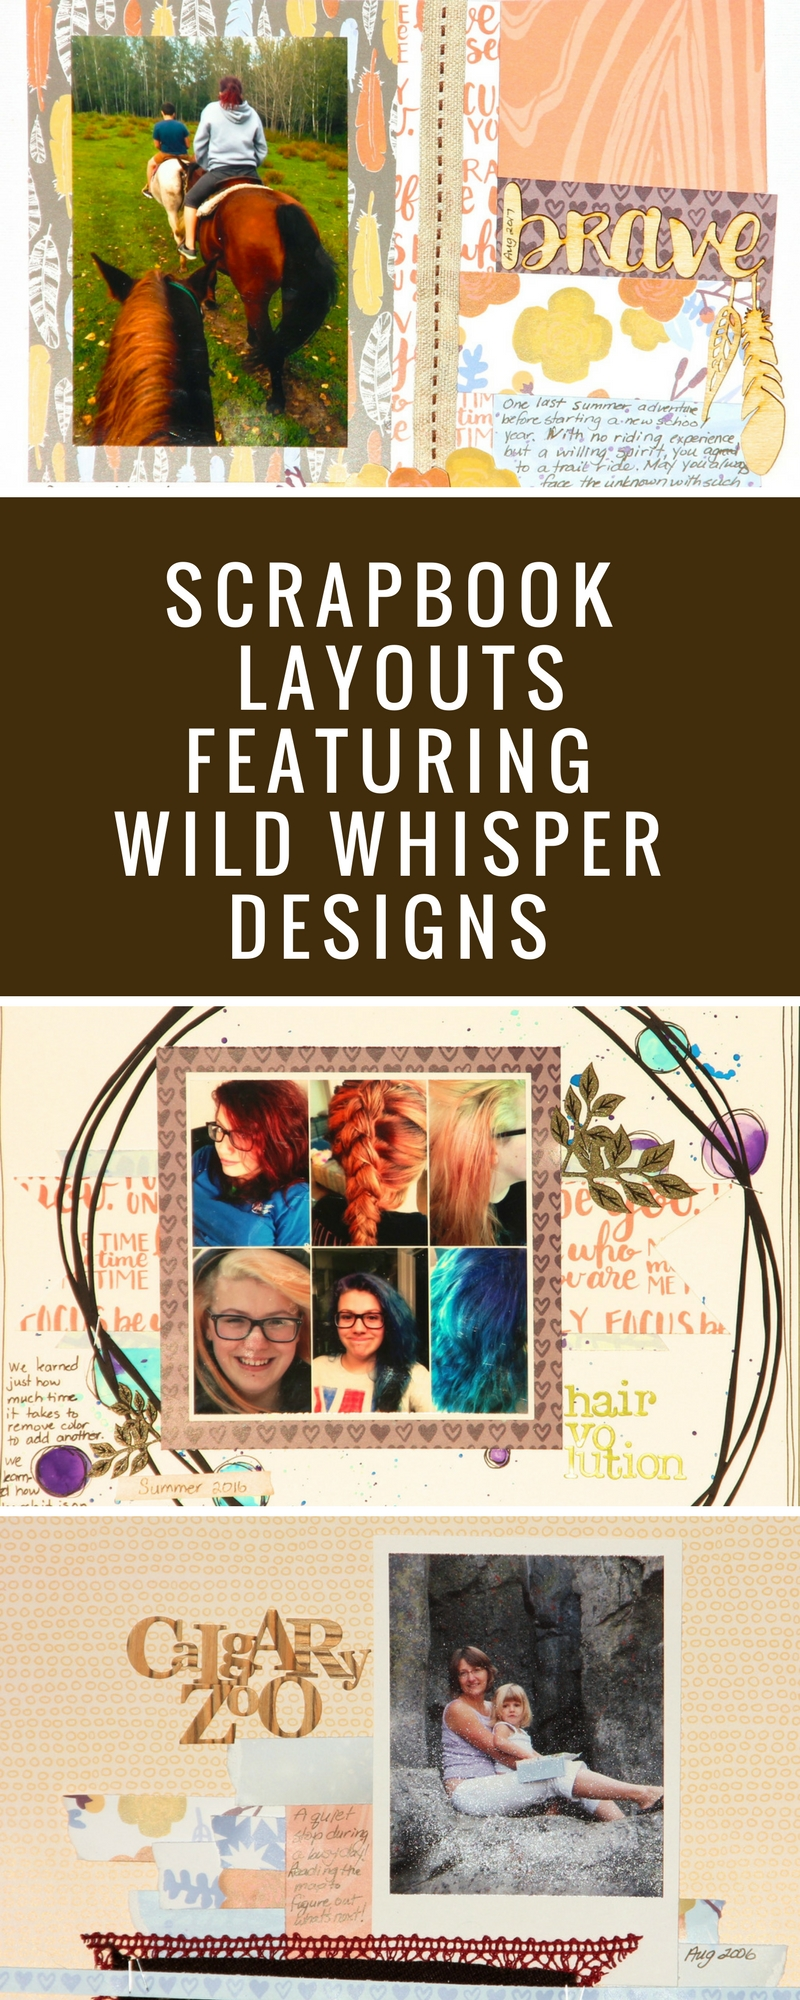 Scrapbooking Layouts | Scrapbook Pages | 12X12 Layout | Featuring Wild Whisper Designs | Creative Scrapbooker Magazine